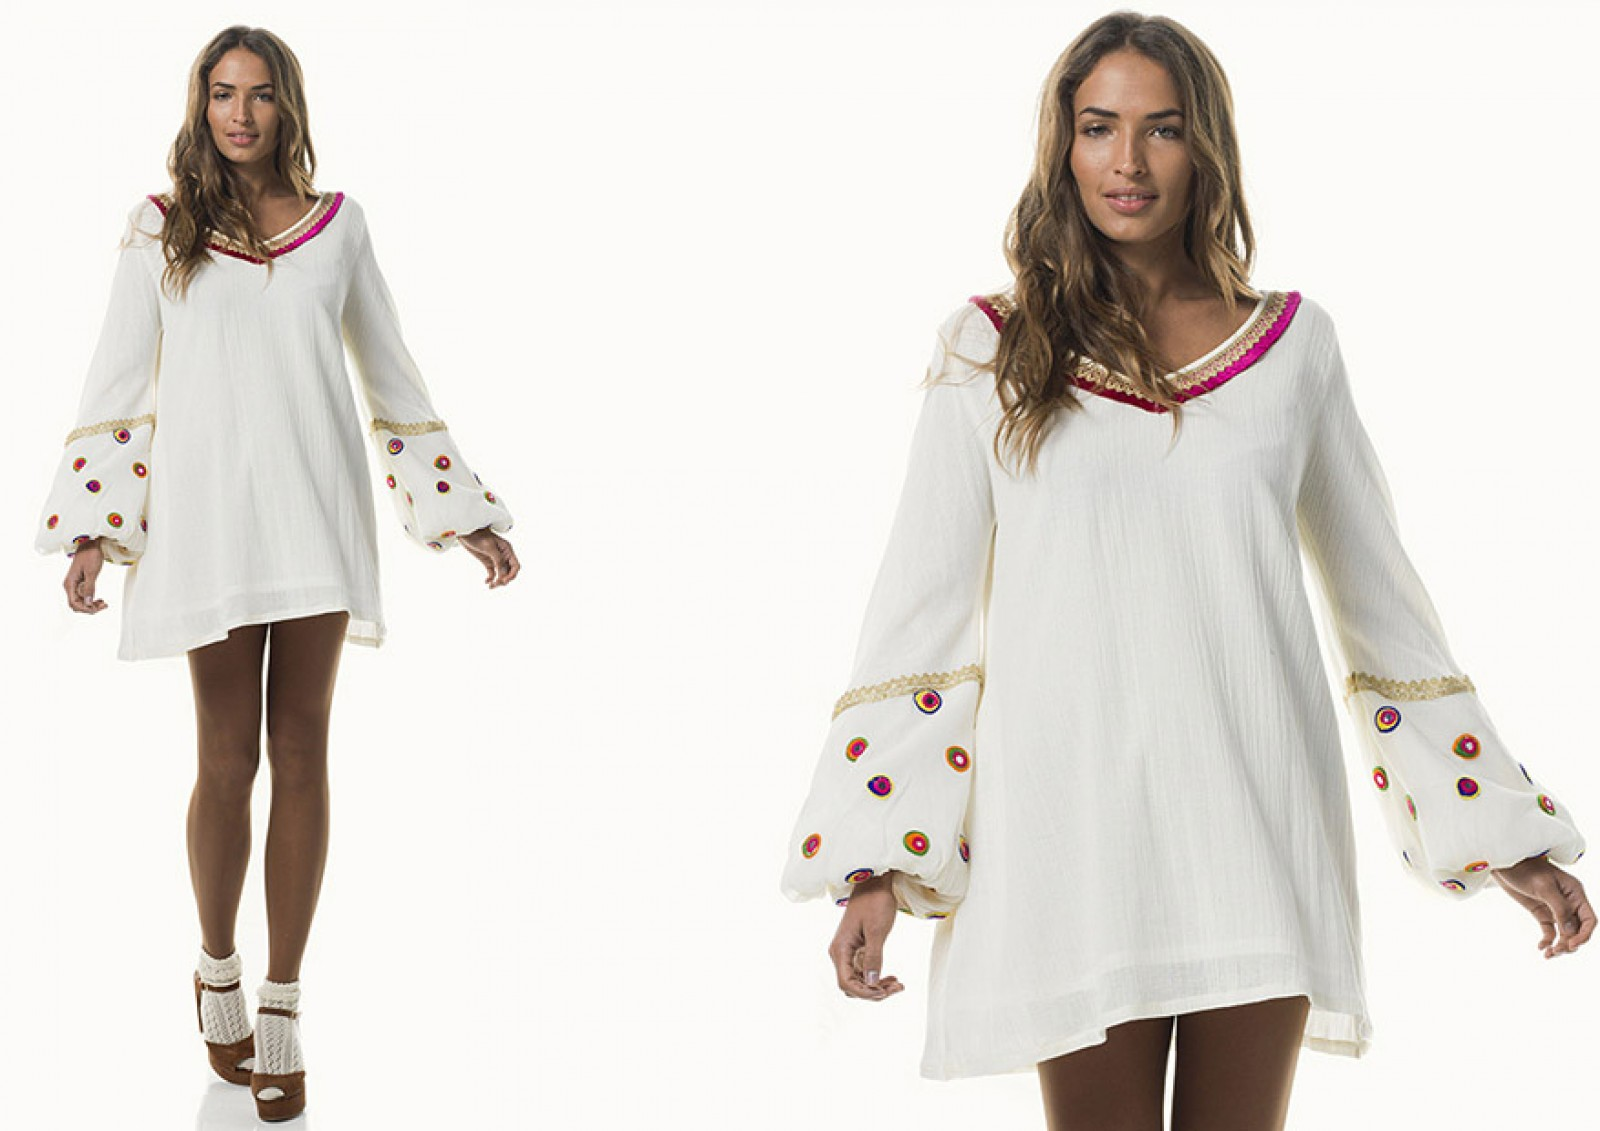 Vista delantera de Calypso Dress Beige, ideal vestido hippie chic.